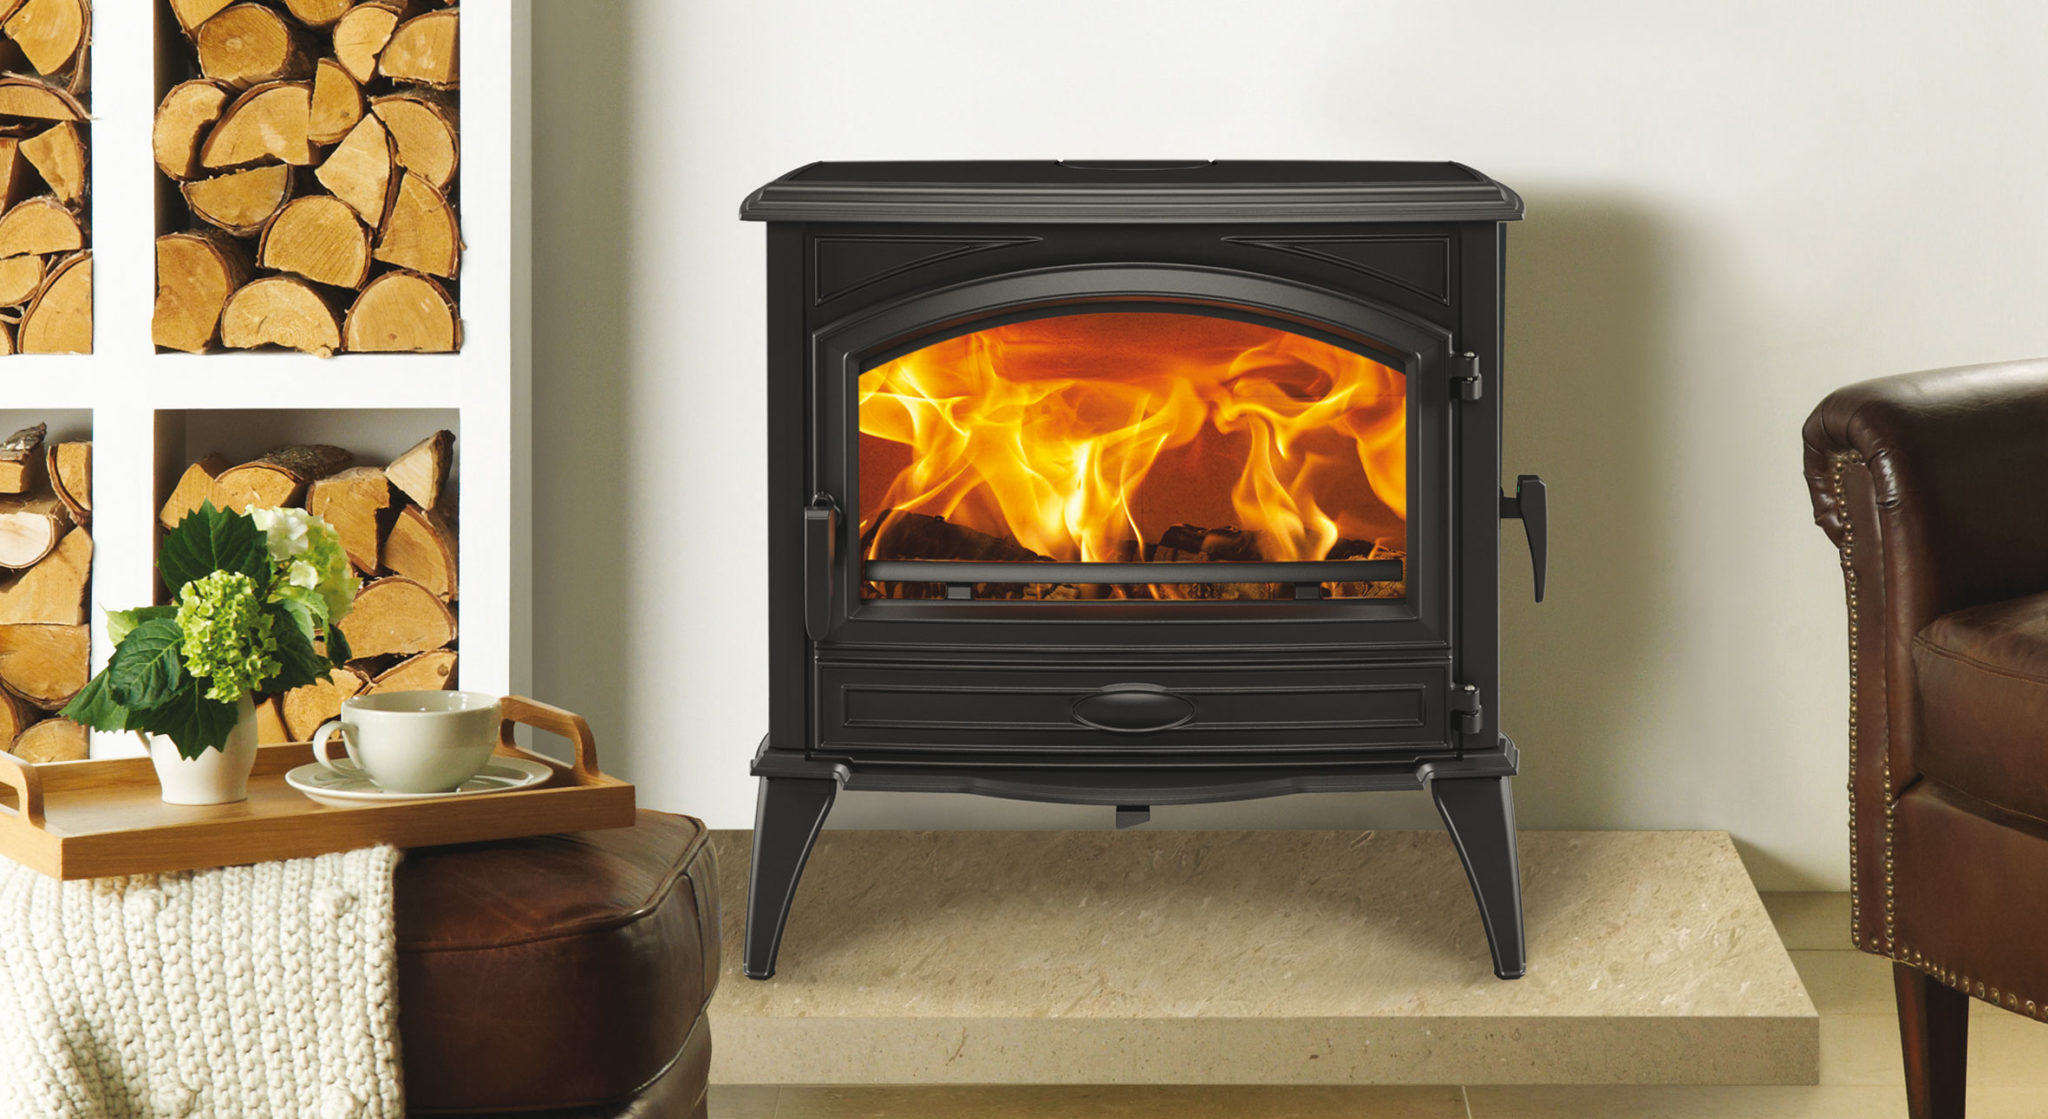 How to choose the best wood for your woodburner